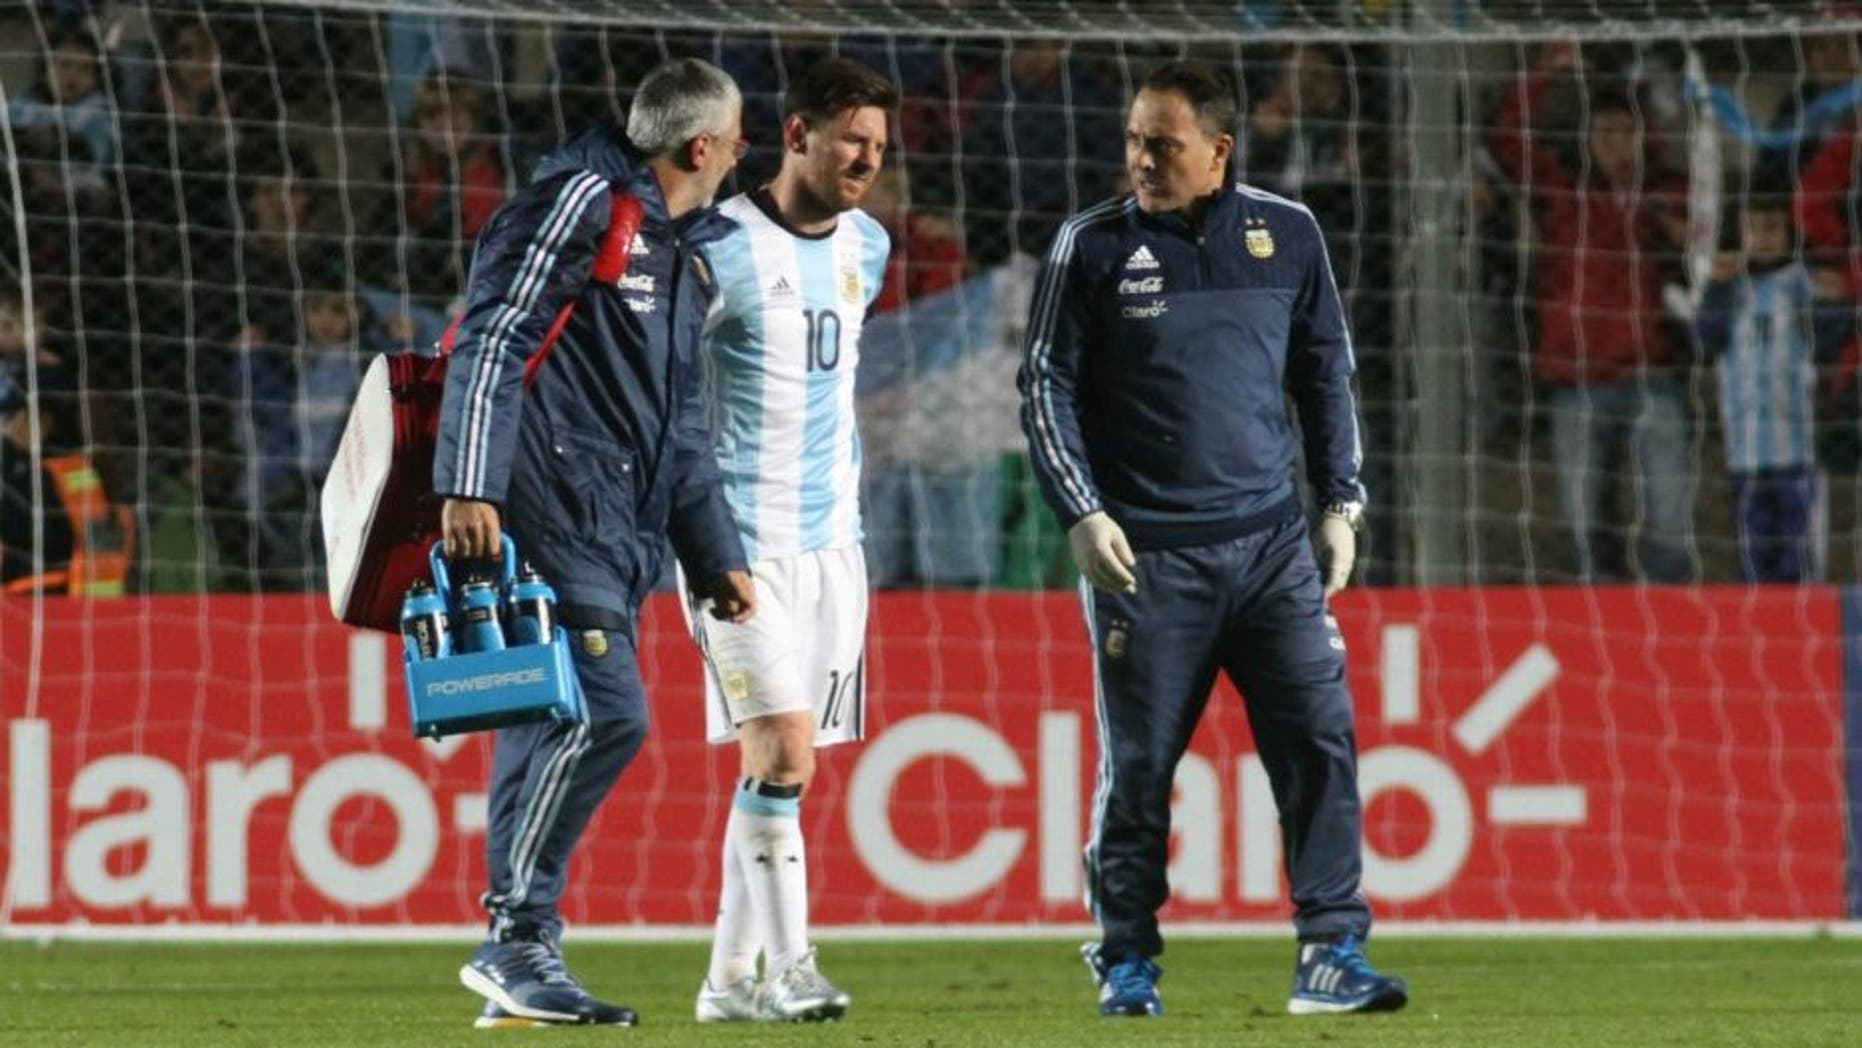 SAN JUAN, ARGENTINA- MAY 27: Lionel Messi of Argentina leaves the field after being injuried during an international friendly match between Argentina and Honduras at Bicentenario de San Juan Stadium on May 27, 2016 in San Juan, Argentina. (Photo by Marcos Carrizo/Anadolu Agency/Getty Images)